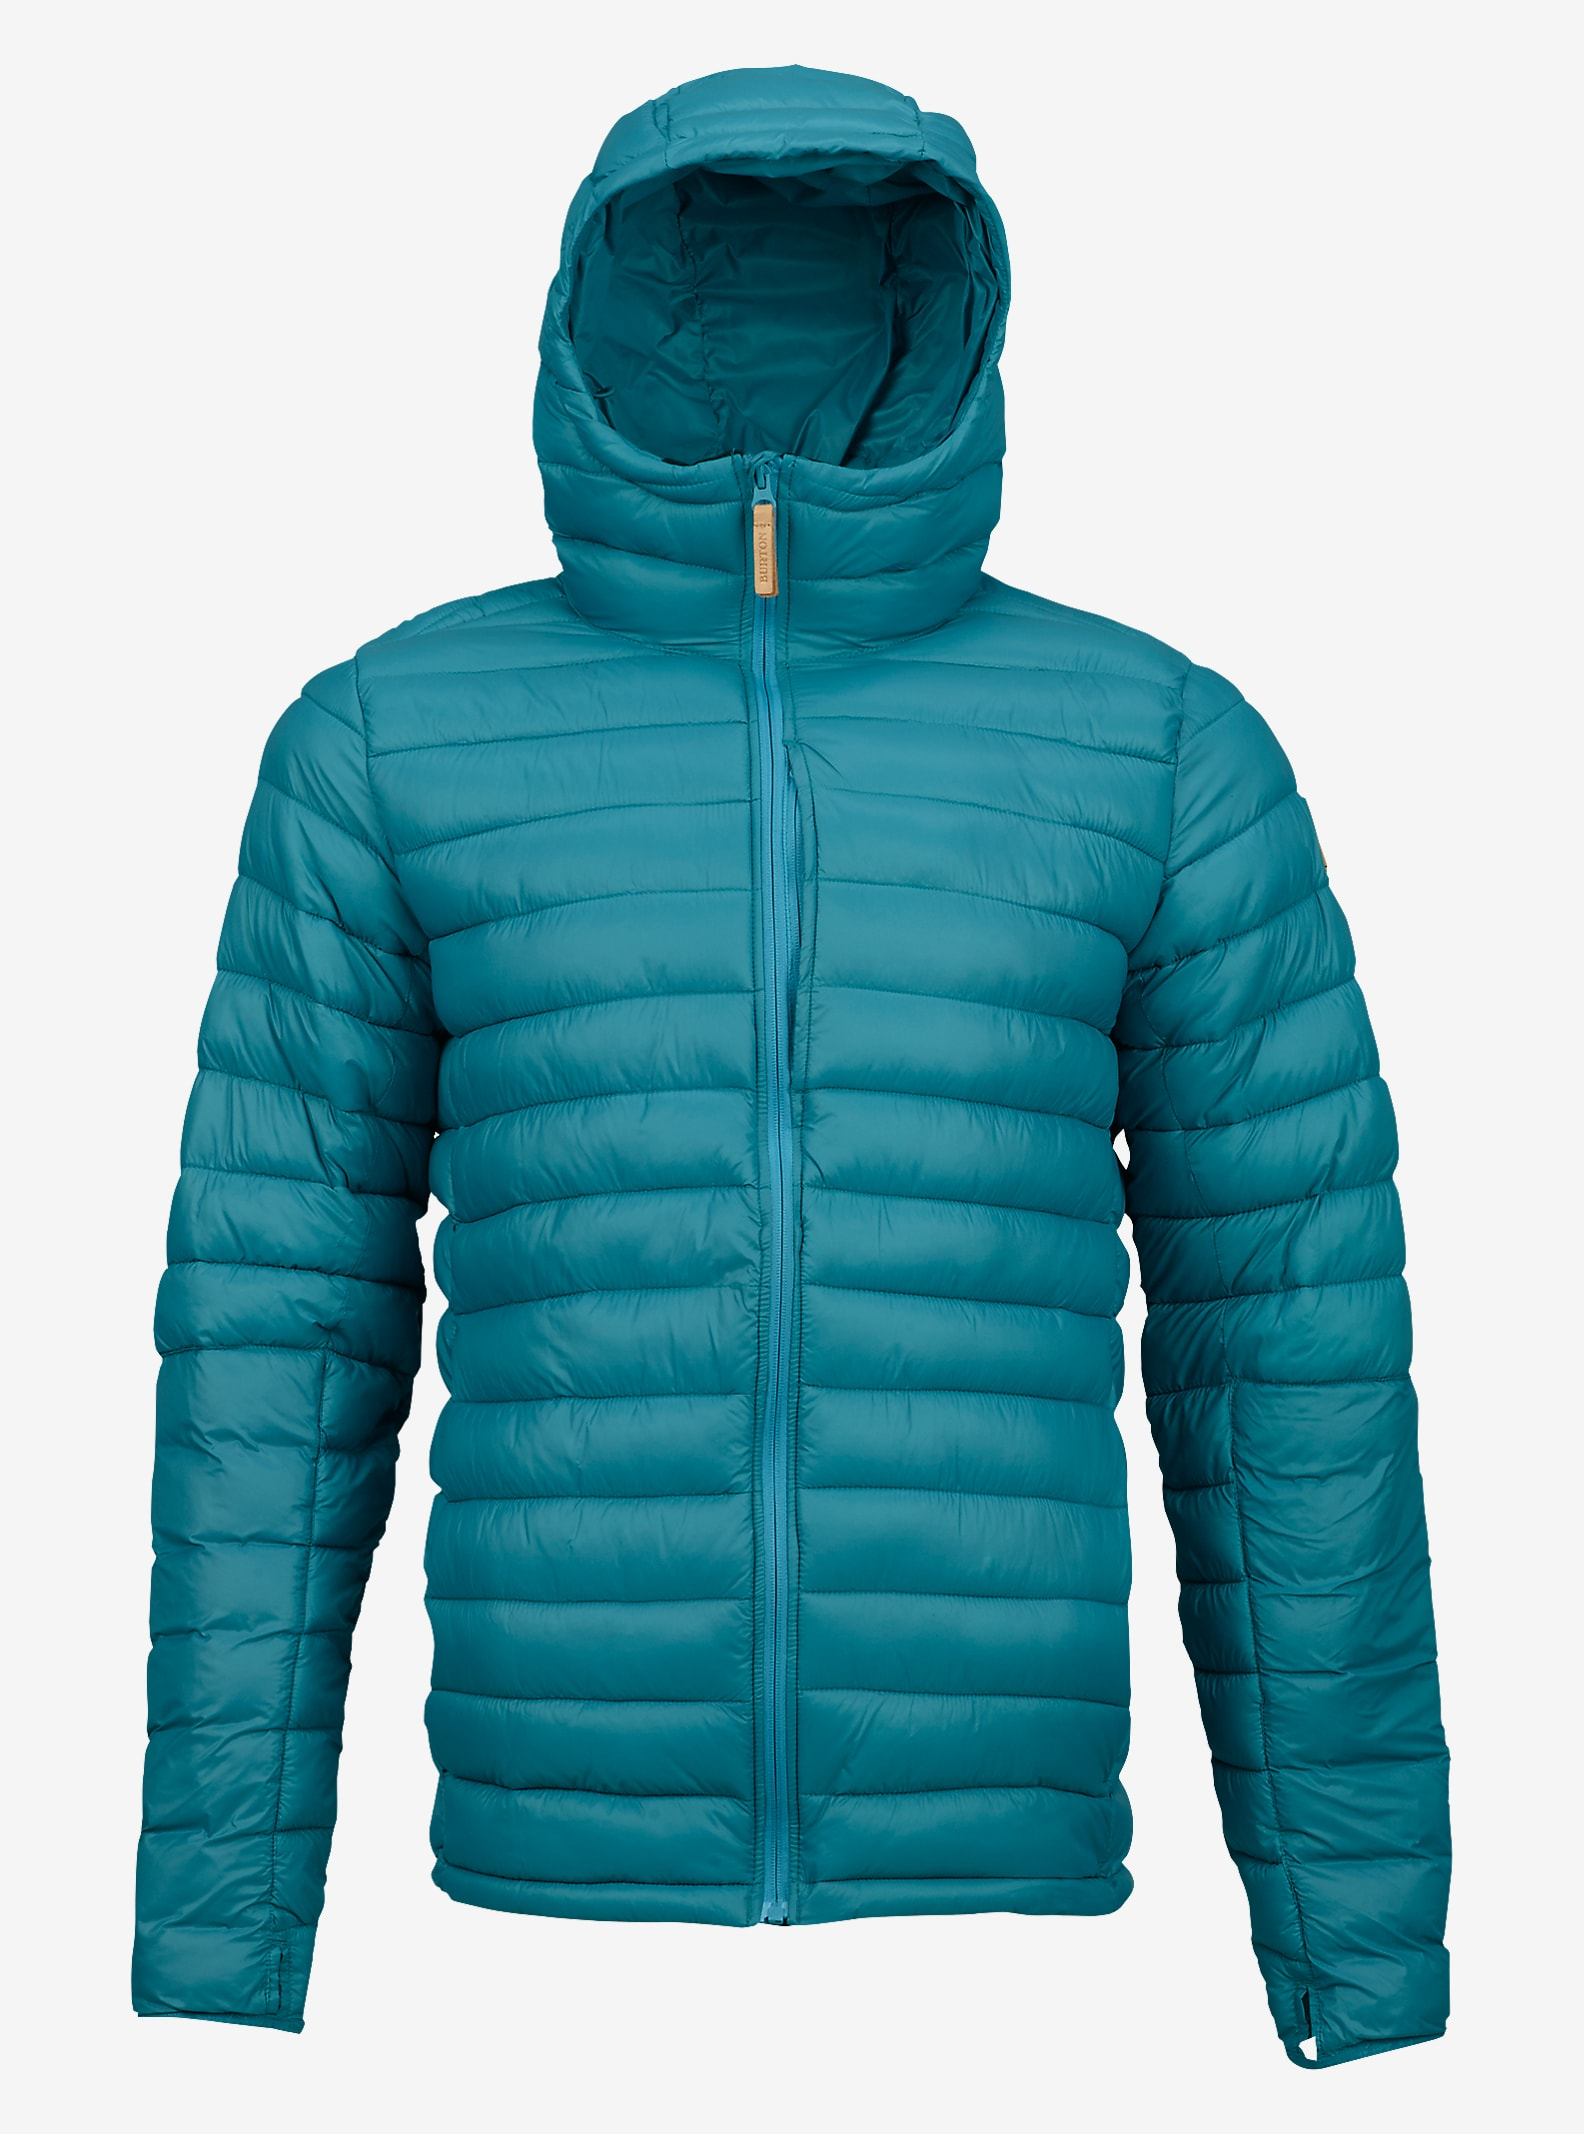 Burton Evergreen Hooded Synthetic Insulator shown in Larkspur